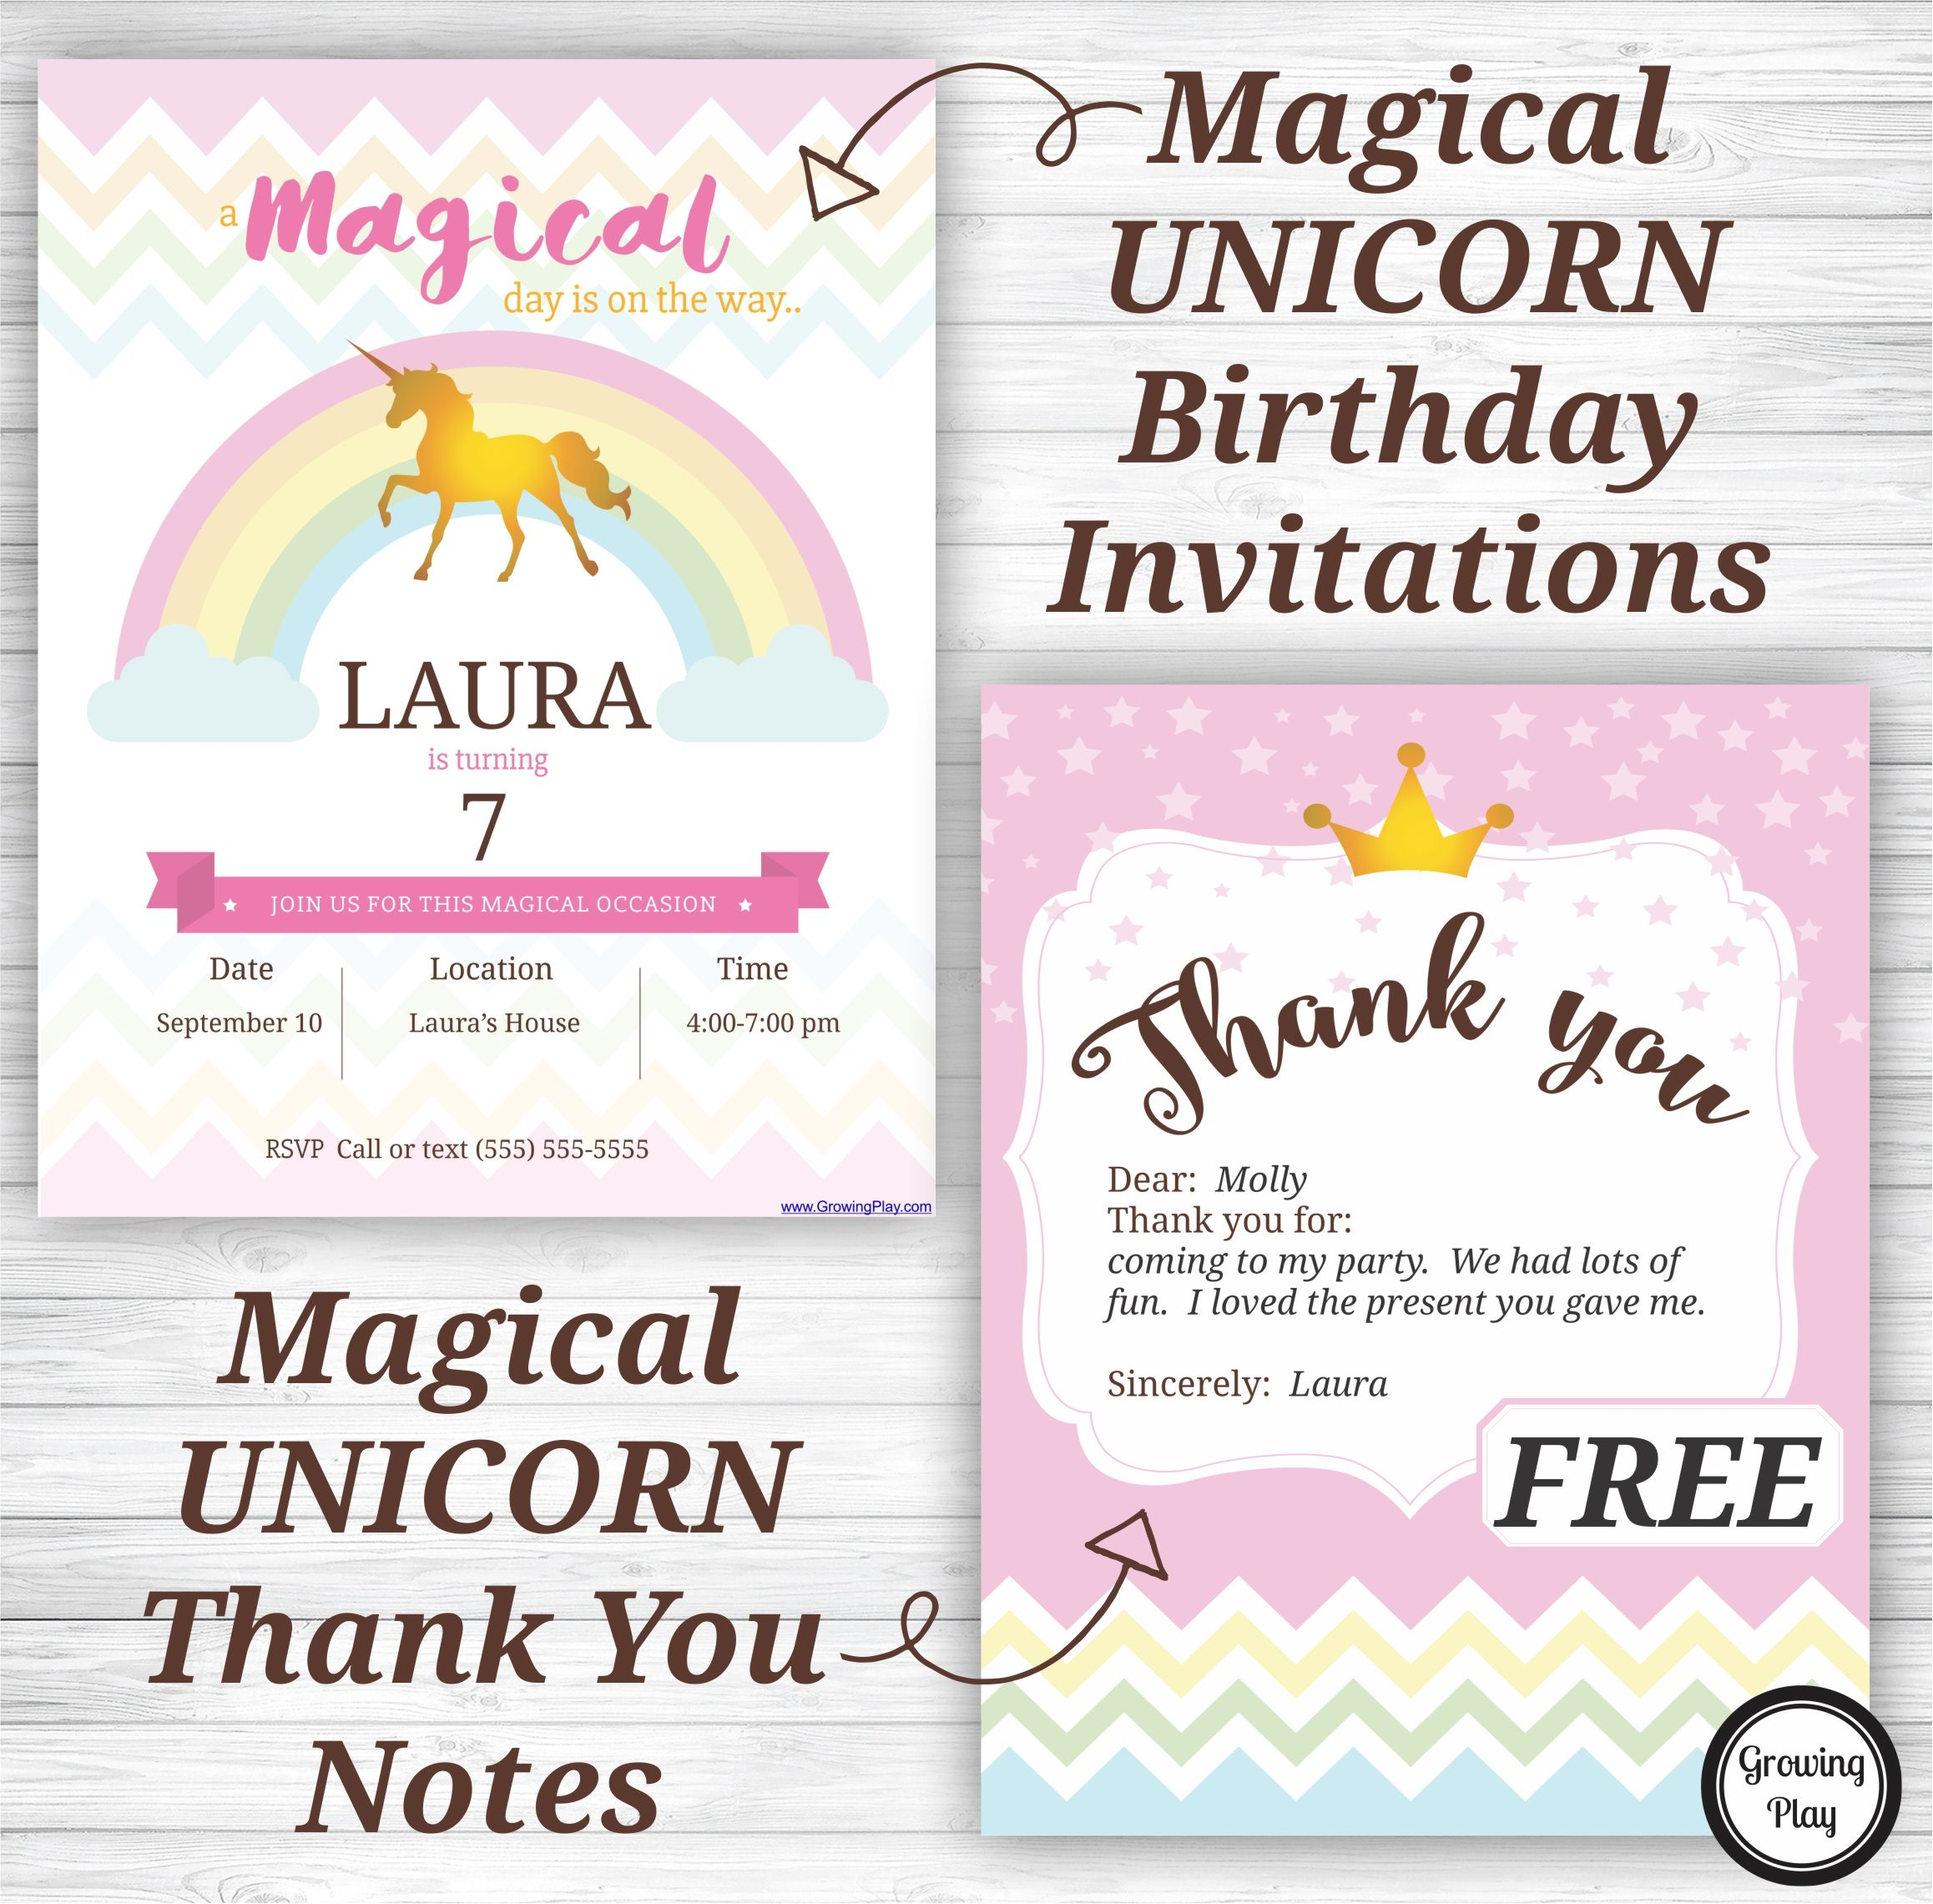 Download Your FREE Unicorn Birthday Party Invitations And